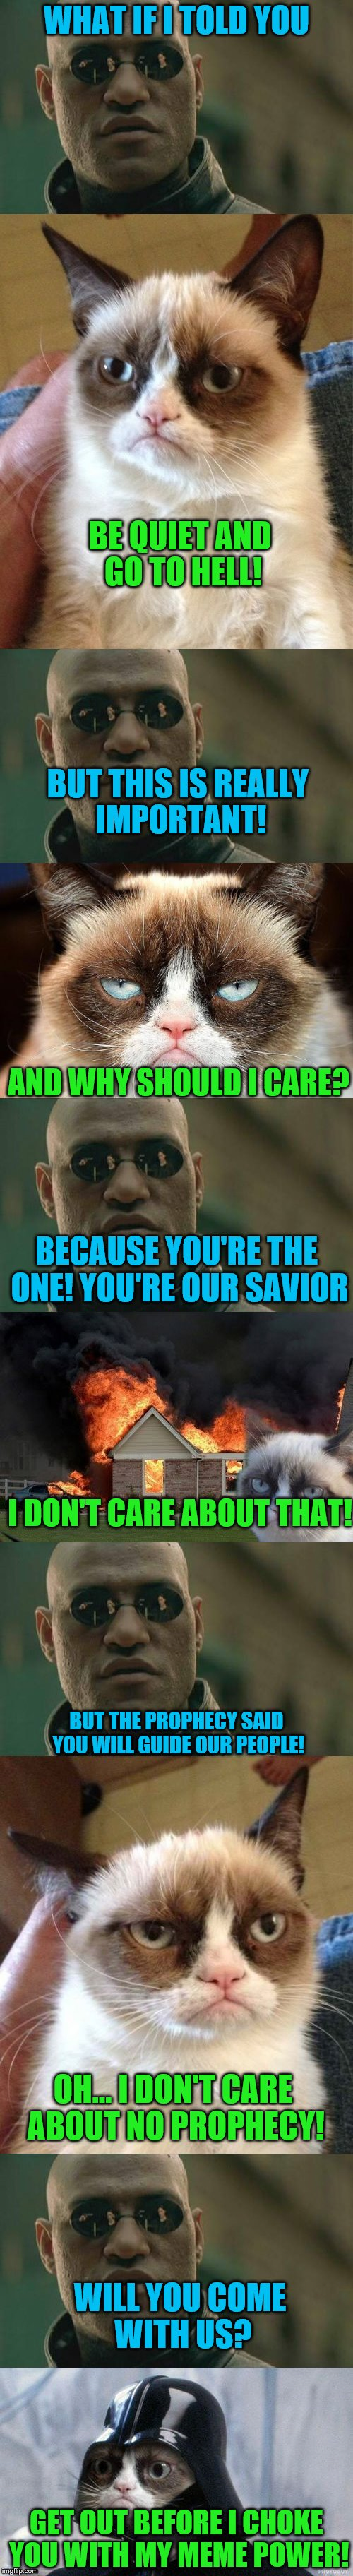 Best collab since Space Marines! blew up MLP! | WHAT IF I TOLD YOU GET OUT BEFORE I CHOKE YOU WITH MY MEME POWER! BE QUIET AND GO TO HELL! BUT THIS IS REALLY IMPORTANT! AND WHY SHOULD I CA | image tagged in meme wars week,memes,matrix morpheus,grumpy cat | made w/ Imgflip meme maker